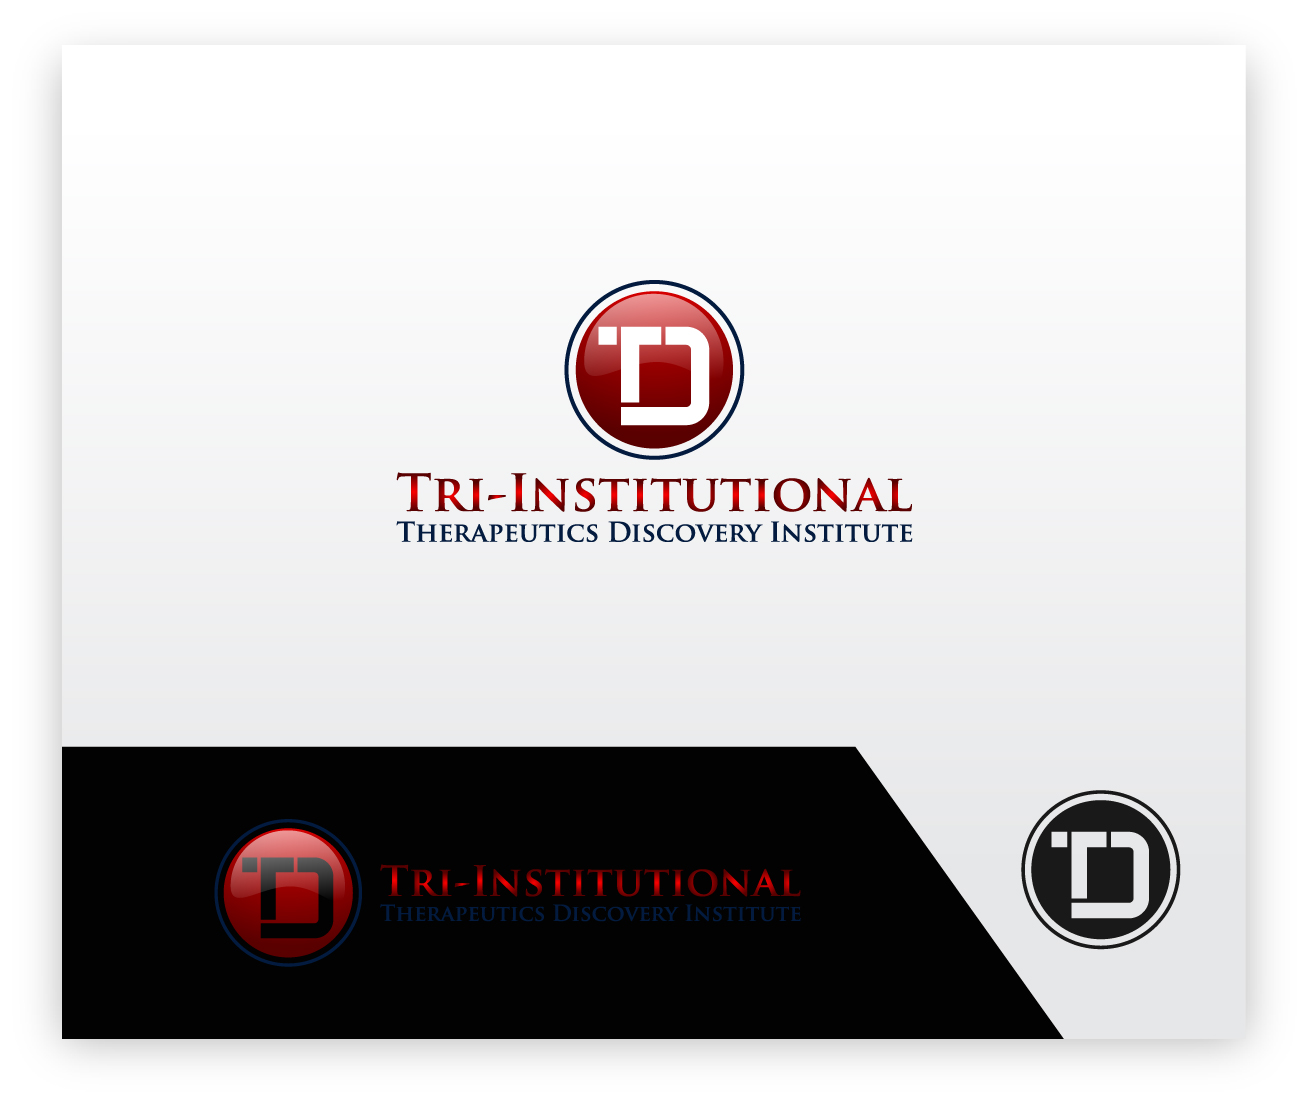 Logo Design by zoiDesign - Entry No. 168 in the Logo Design Contest Inspiring Logo Design for Tri-Institutional Therapeutics Discovery Institute.